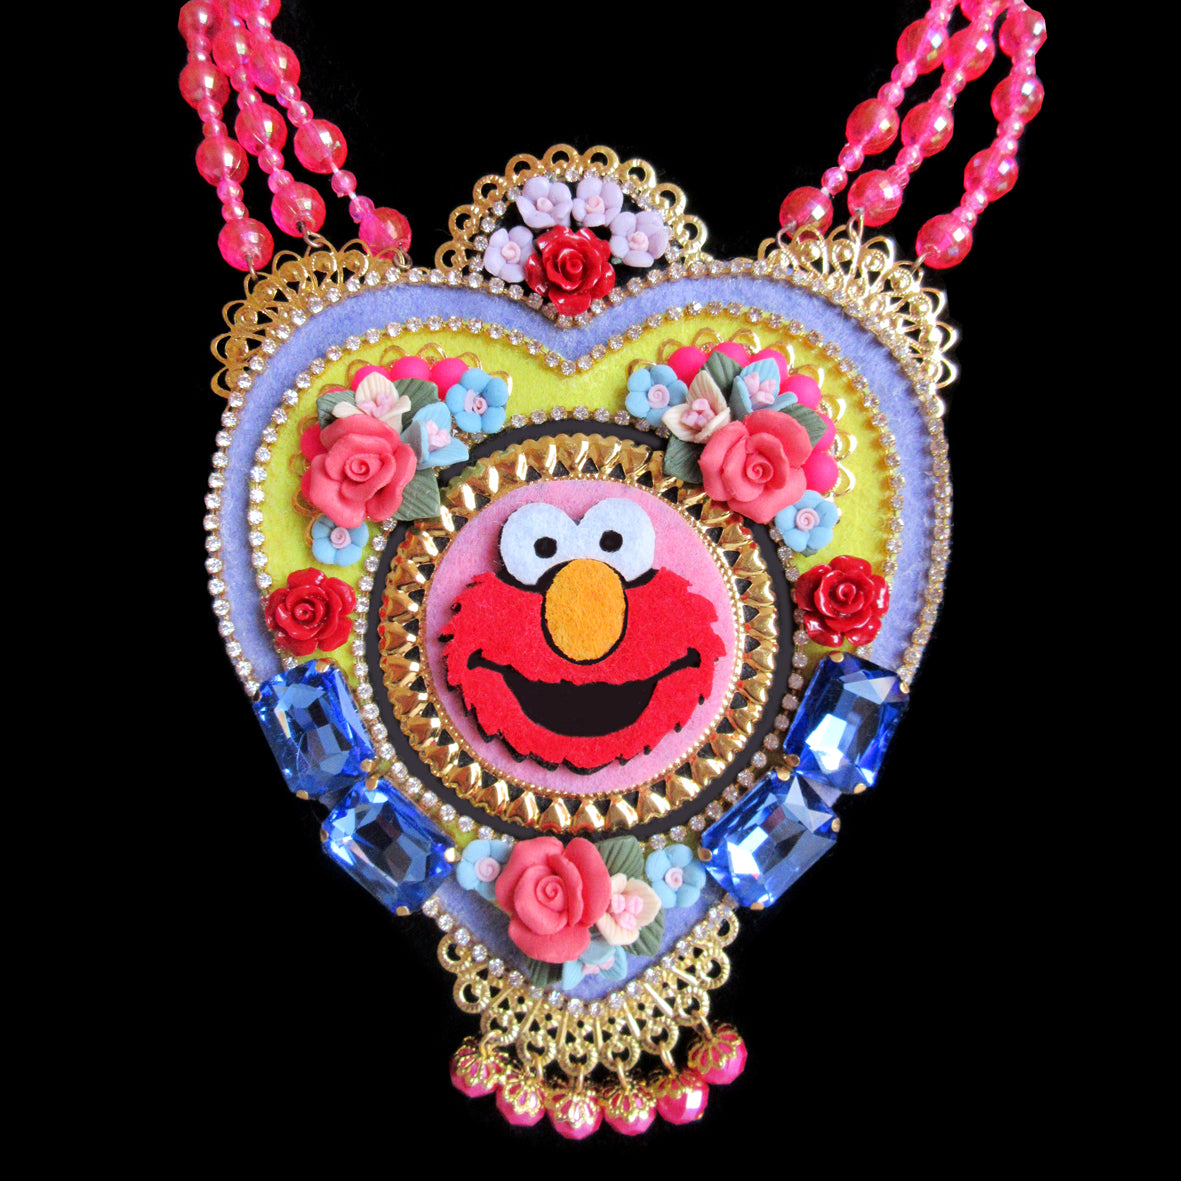 Mouchkine Jewelry handmade in france luxury pop culture Elmo Necklace